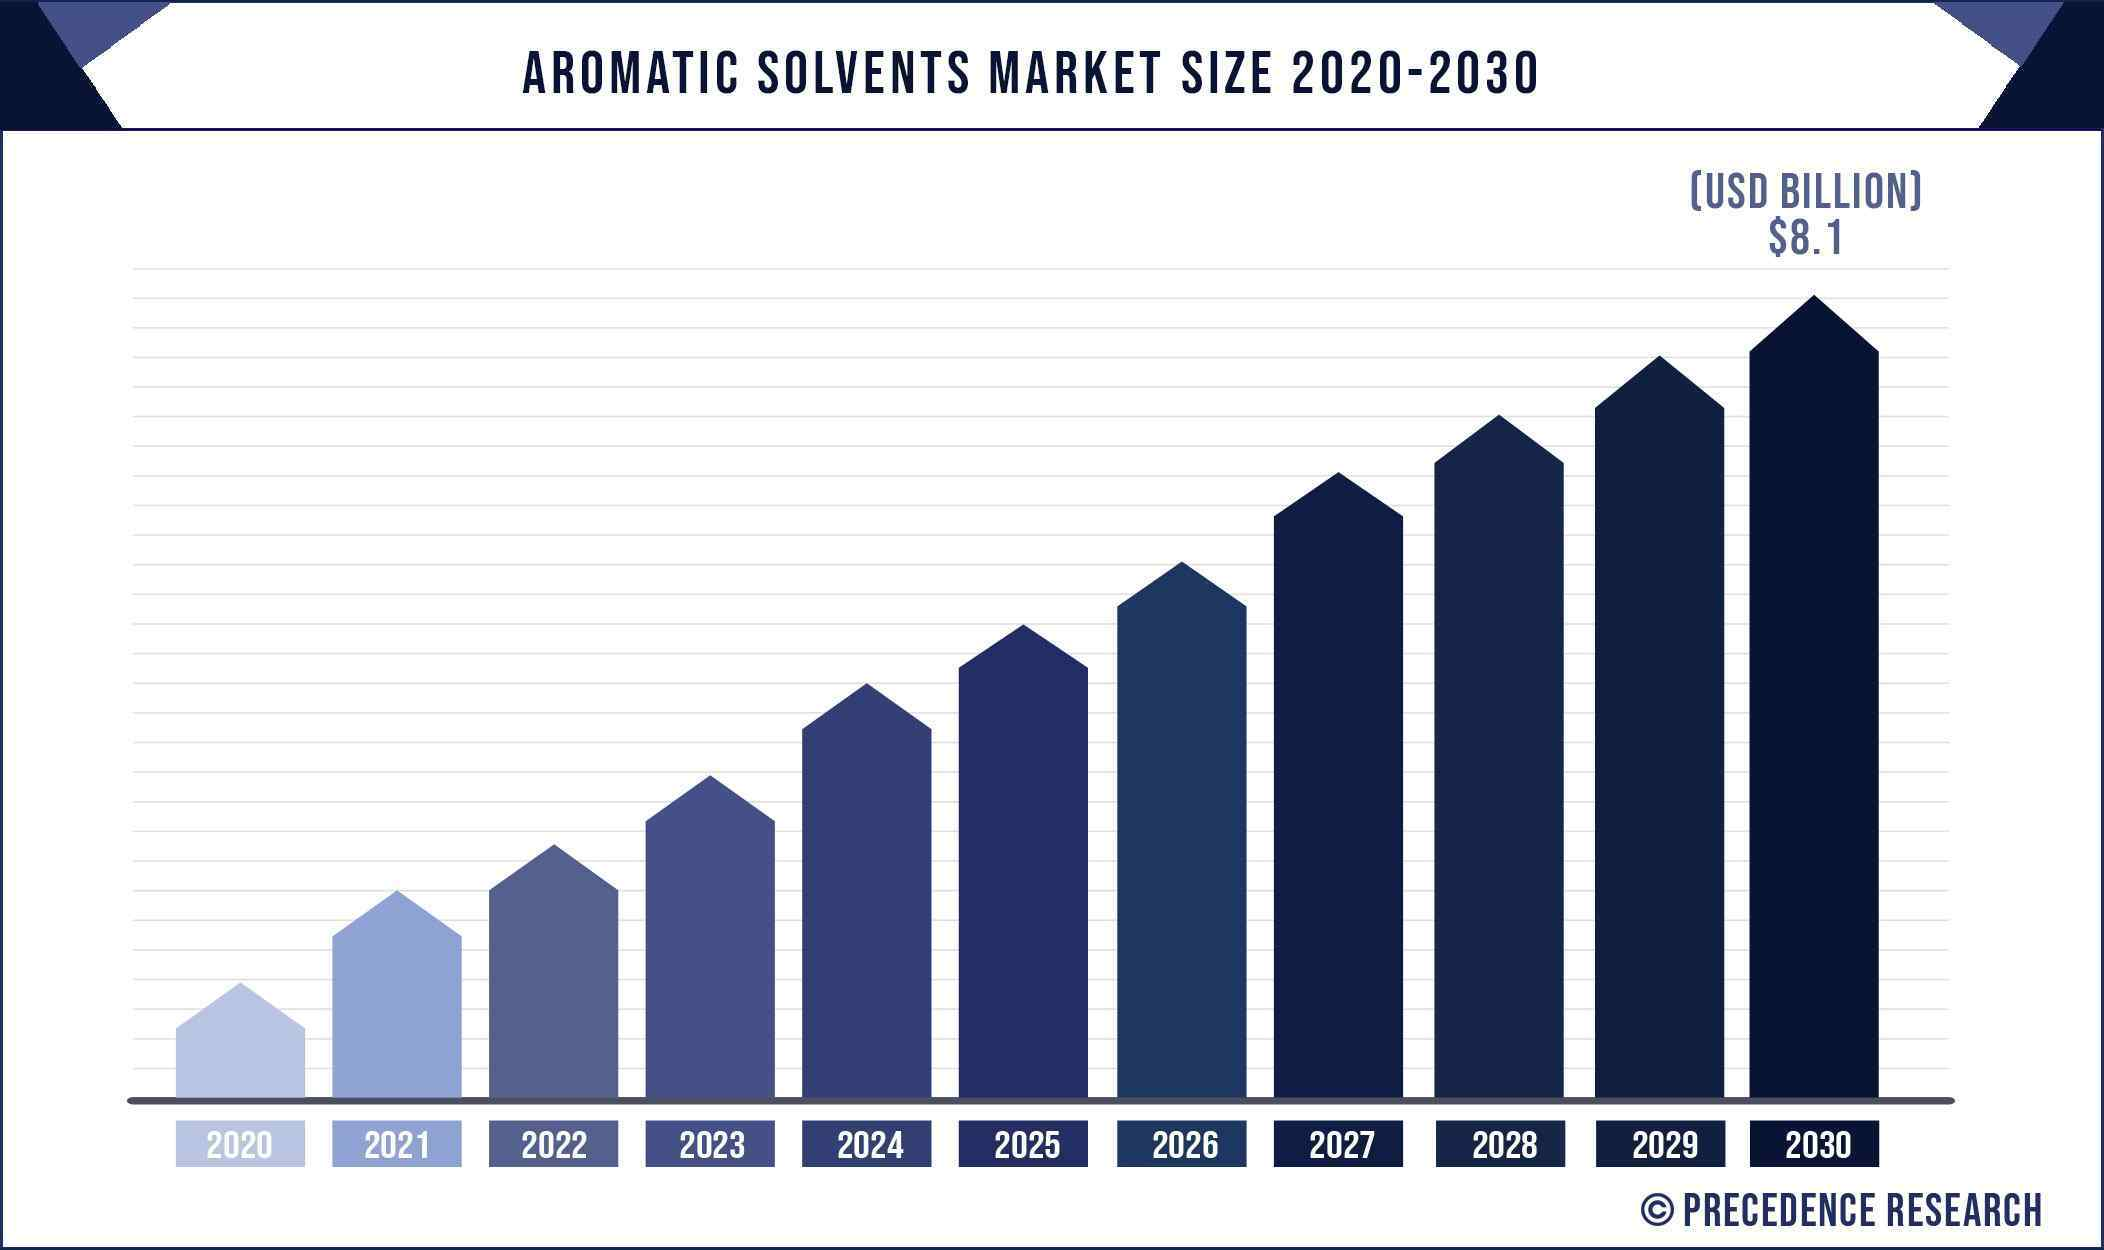 Aromatic Solvents Market Size 2020 to 2030